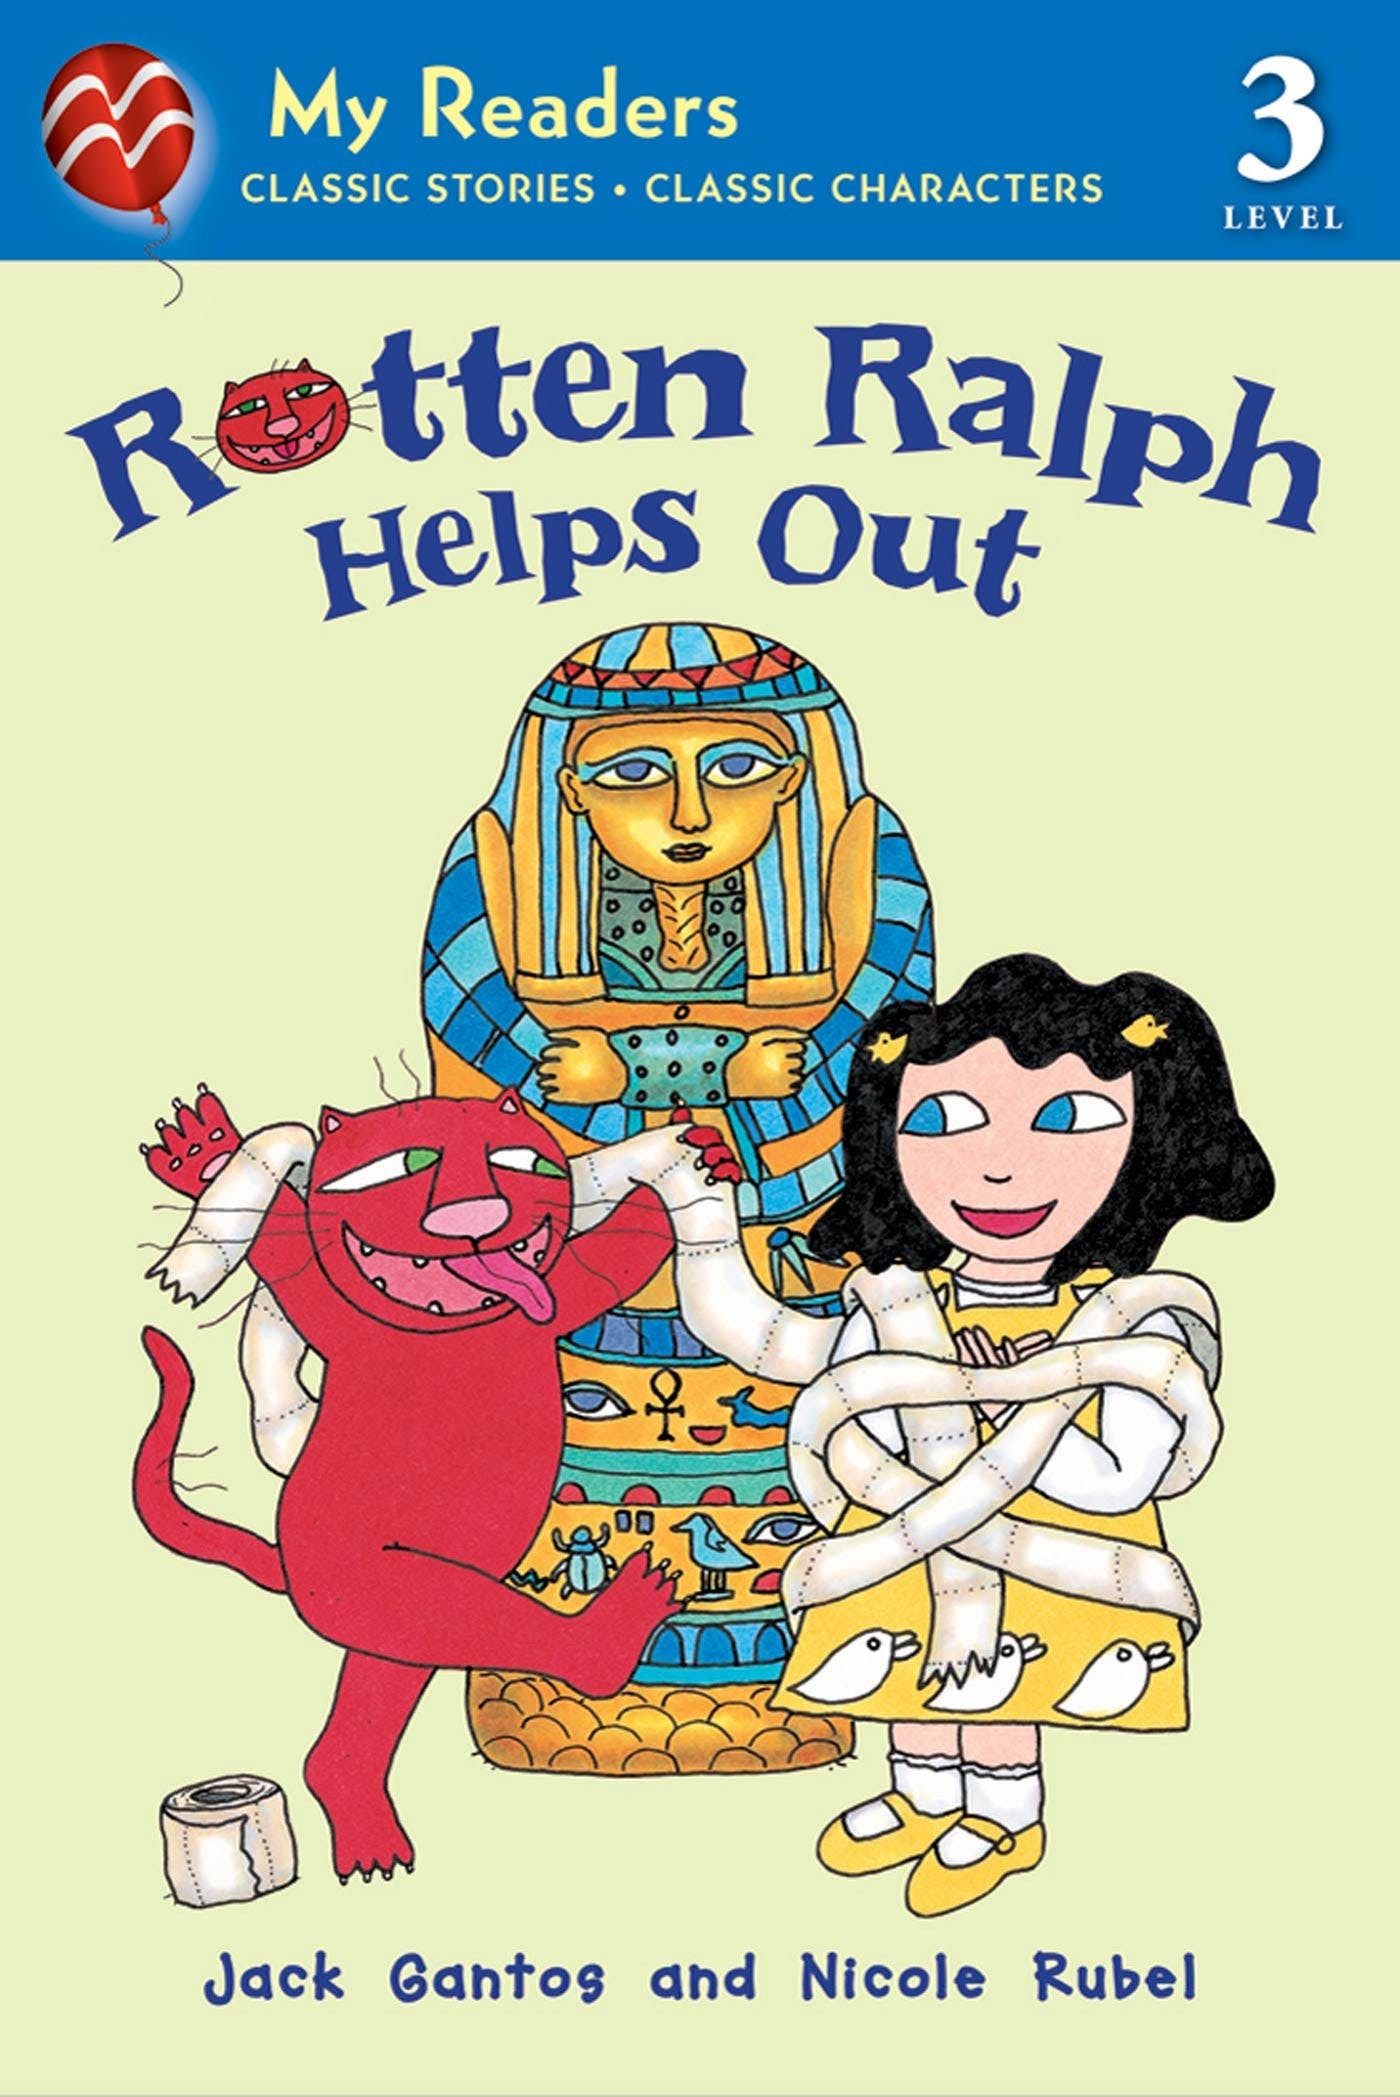 Image of Rotten Ralph Helps Out